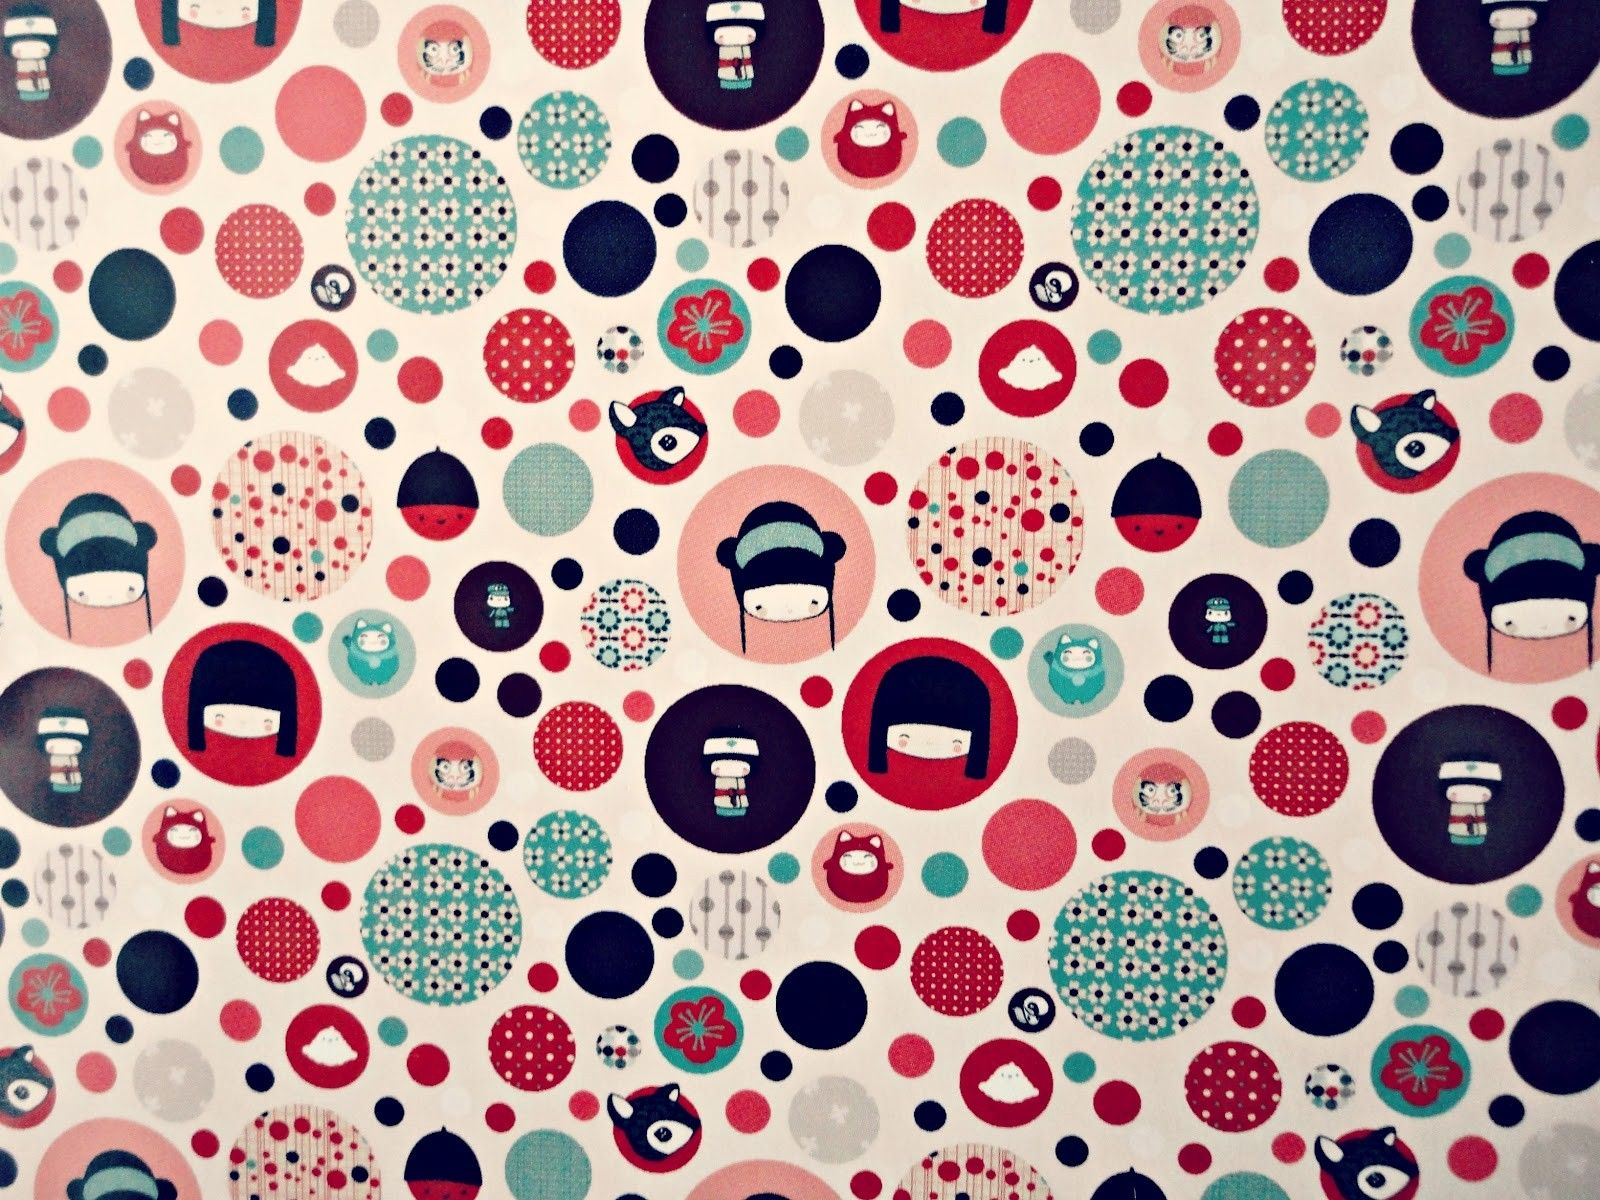 Tumblr iphone wallpaper pattern - Explore Cute Patterns Wallpaper And More